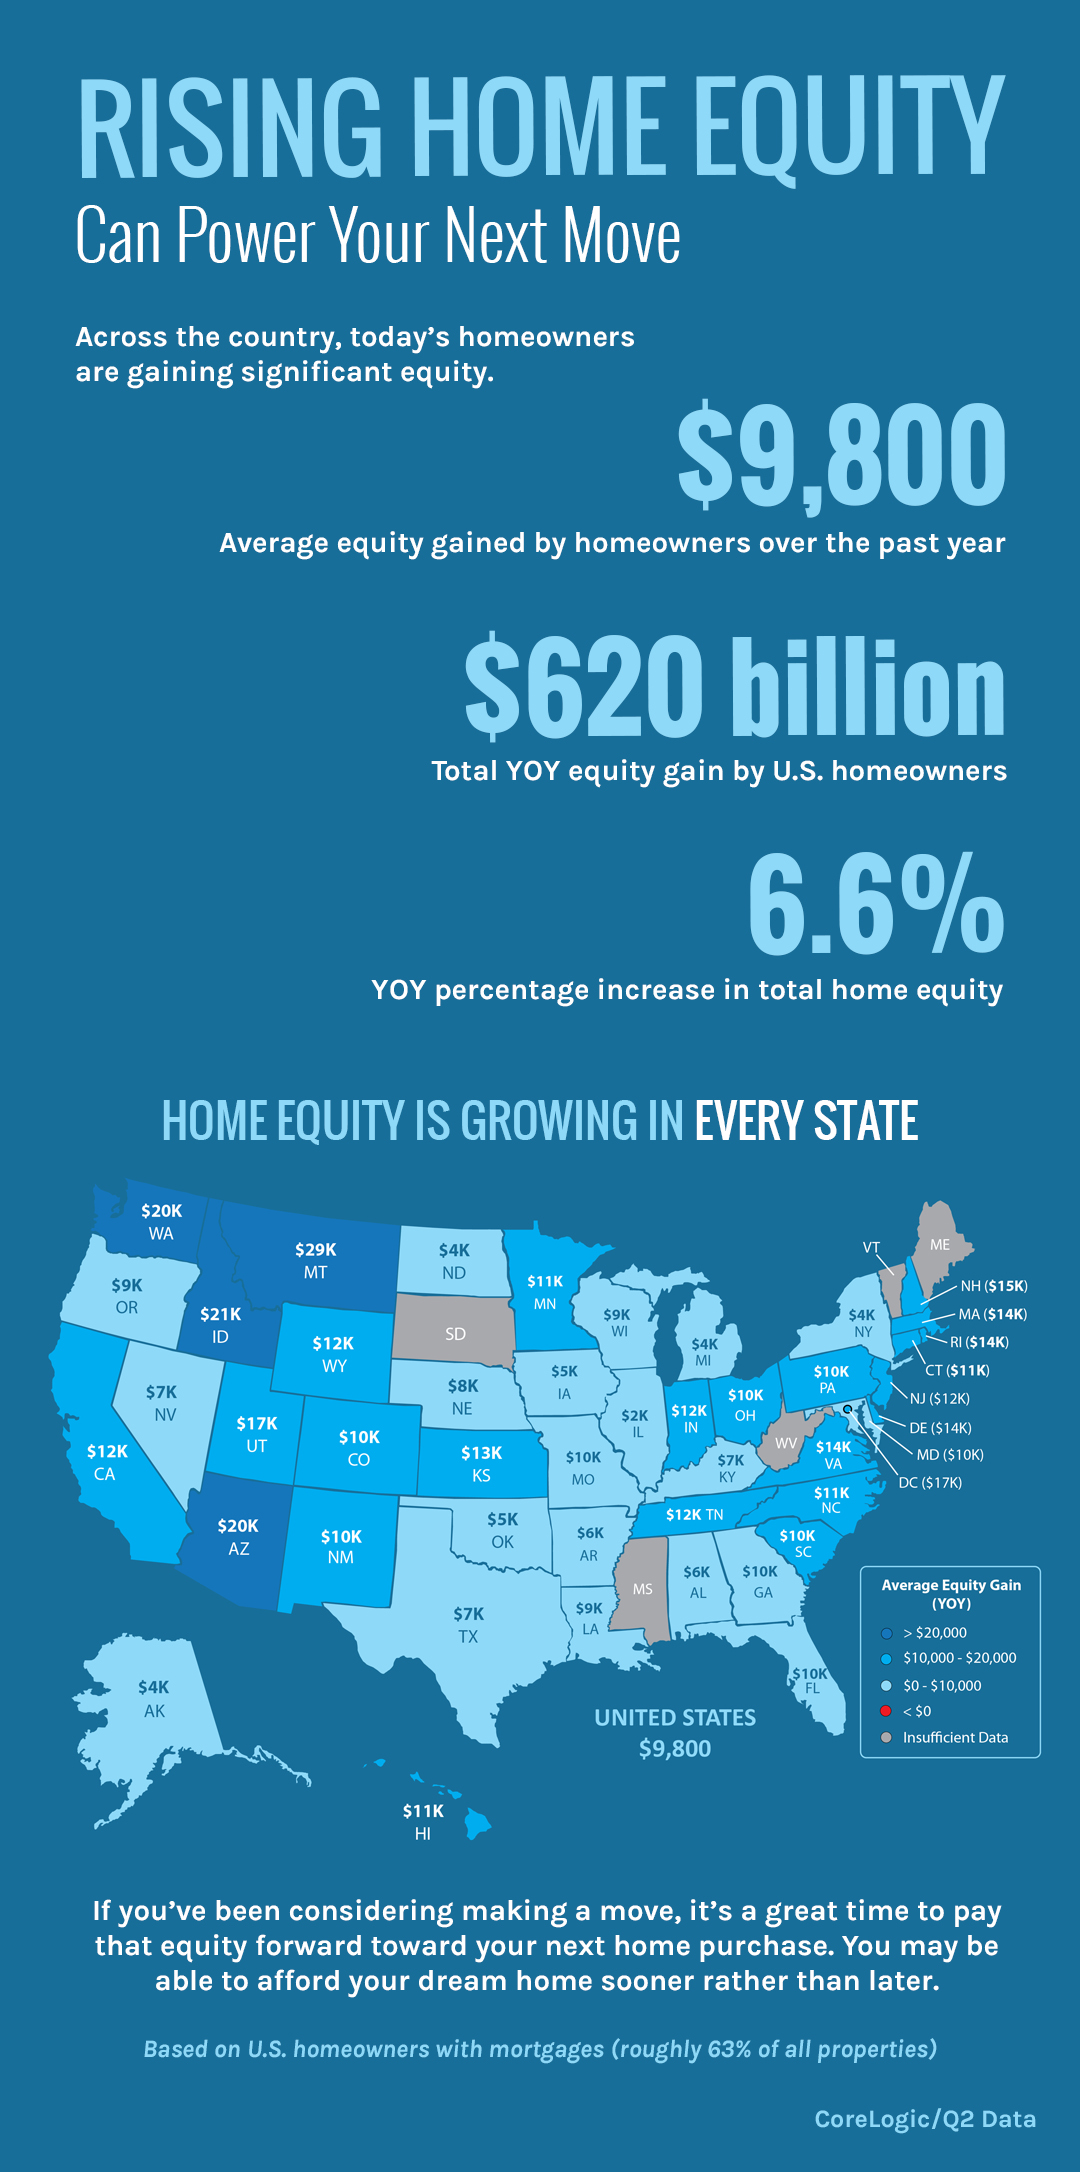 Rising Home Equity Can Power Your Next Move.jpg